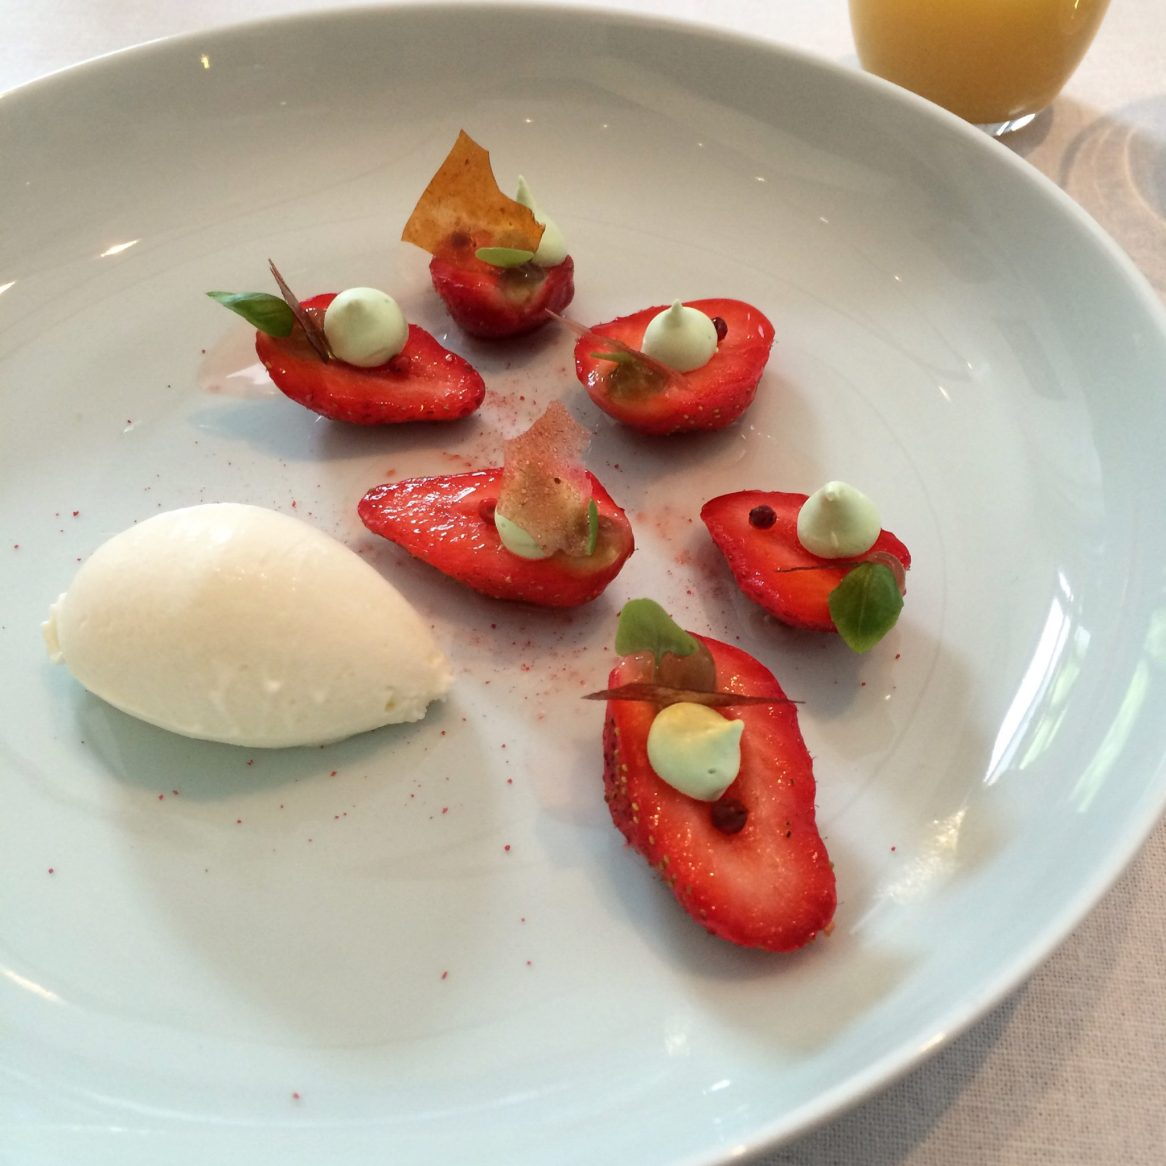 Strawberries at Tim Raue